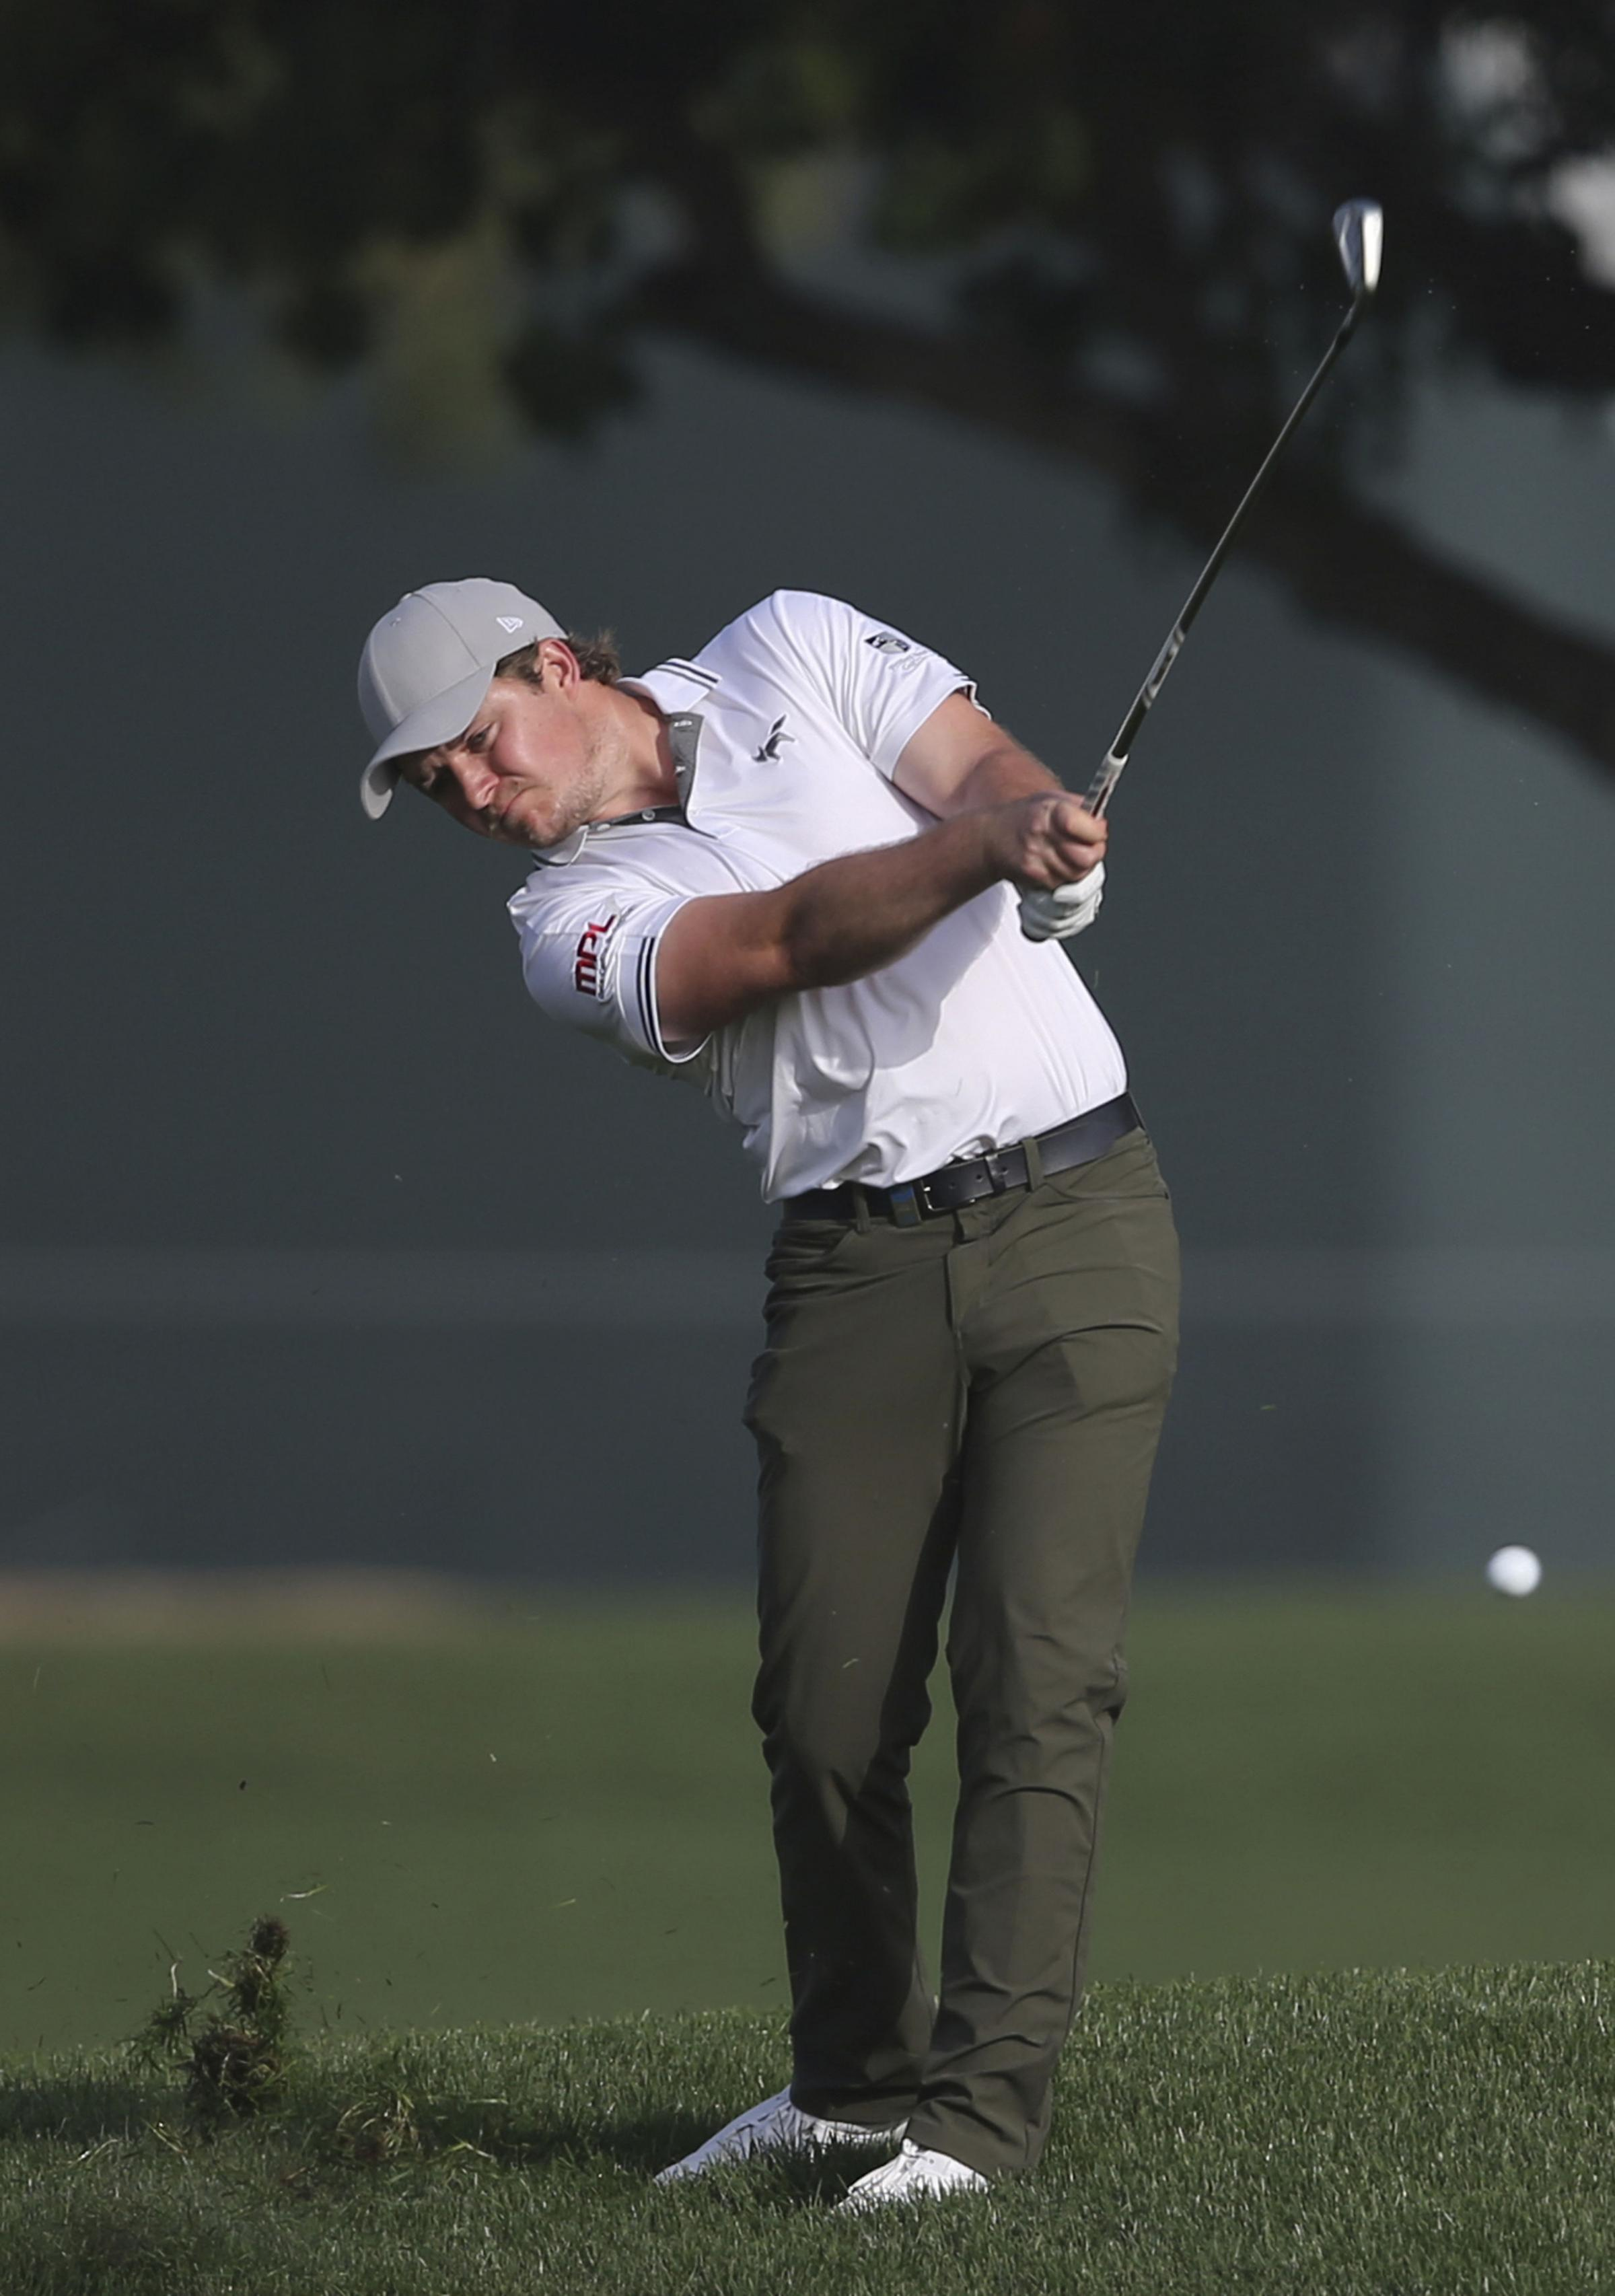 Eddie Pepperell in action at the Omega Dubai Desert Classic Picture: AP Photo/Kamran Jebreili